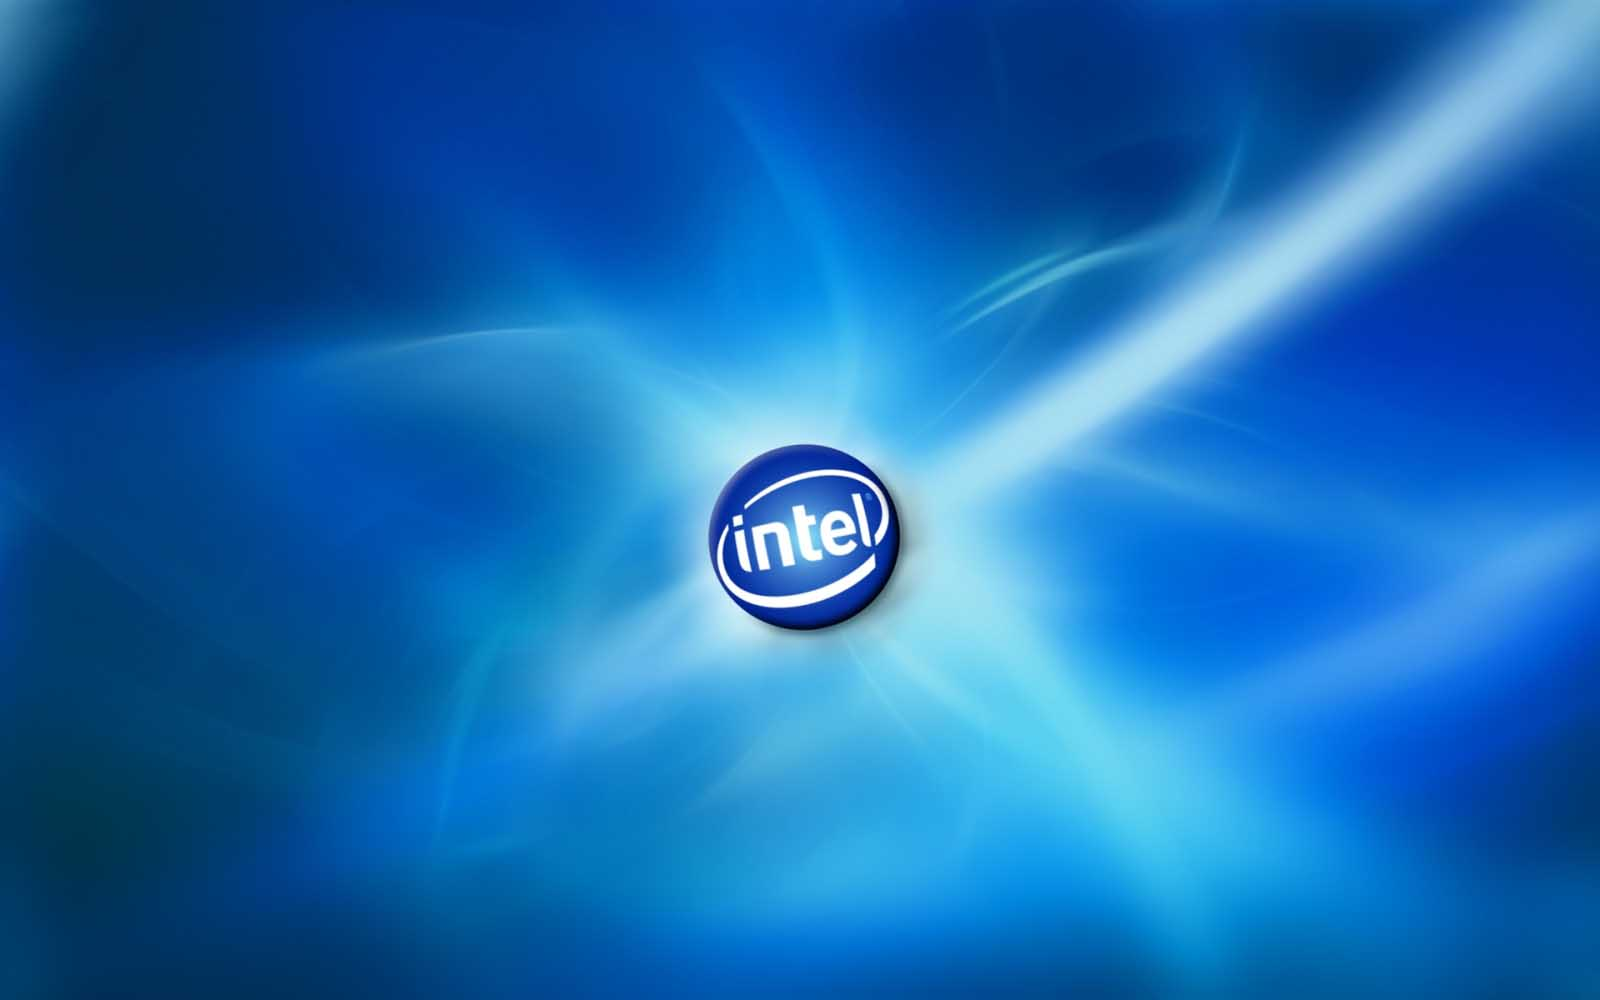 Intel Wallpapers from Logo to Motherboard in HD 1700